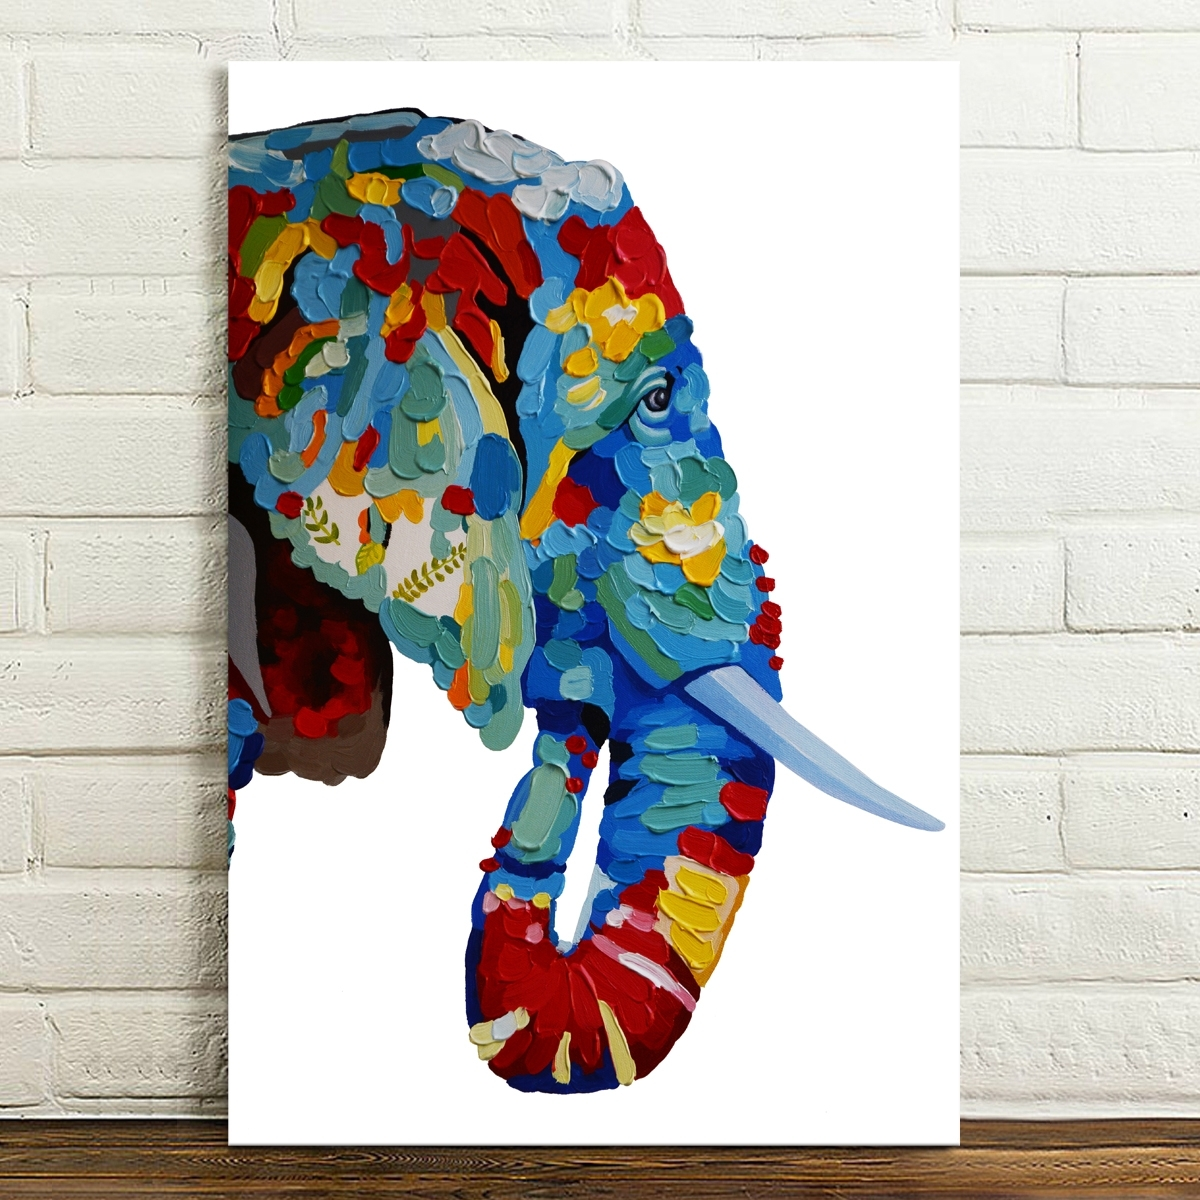 Abstract Canvas Prints Elephant Paintings Posters Home Decor Wall Regarding Most Up To Date Abstract Textile Wall Art (View 9 of 15)